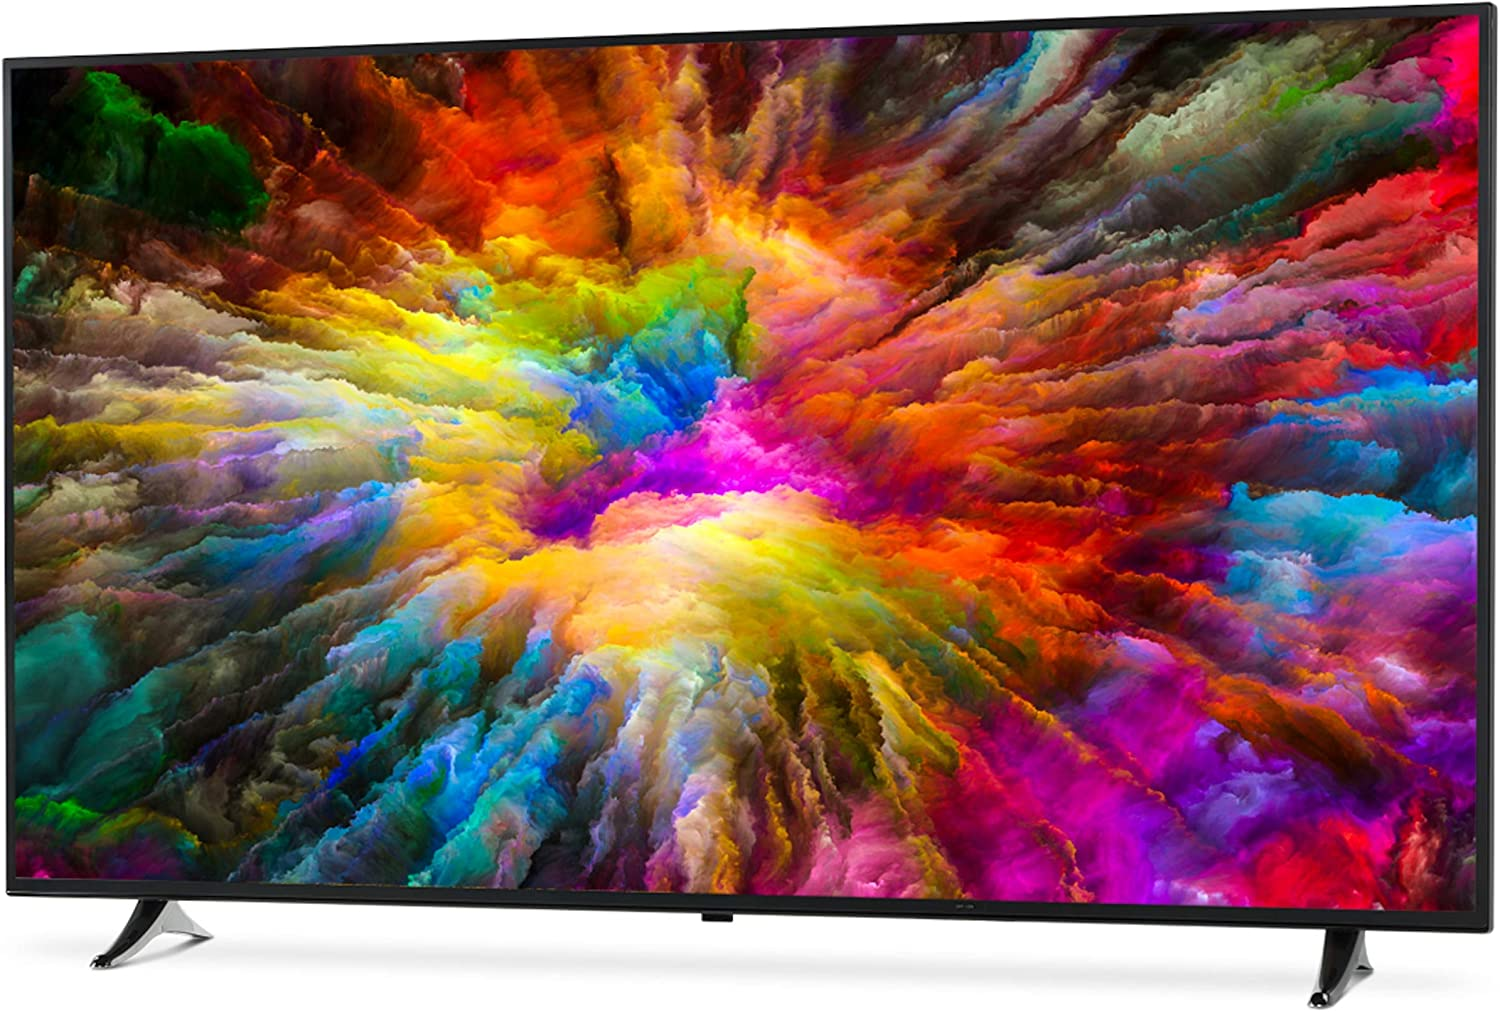 Medion X16513-163,8 cm (65 Zoll) TV (4K Ultra HD, HDR, Smart TV, PVR, WLAN, Triple Tuner (DVB T2), USB): Amazon.es: Electrónica